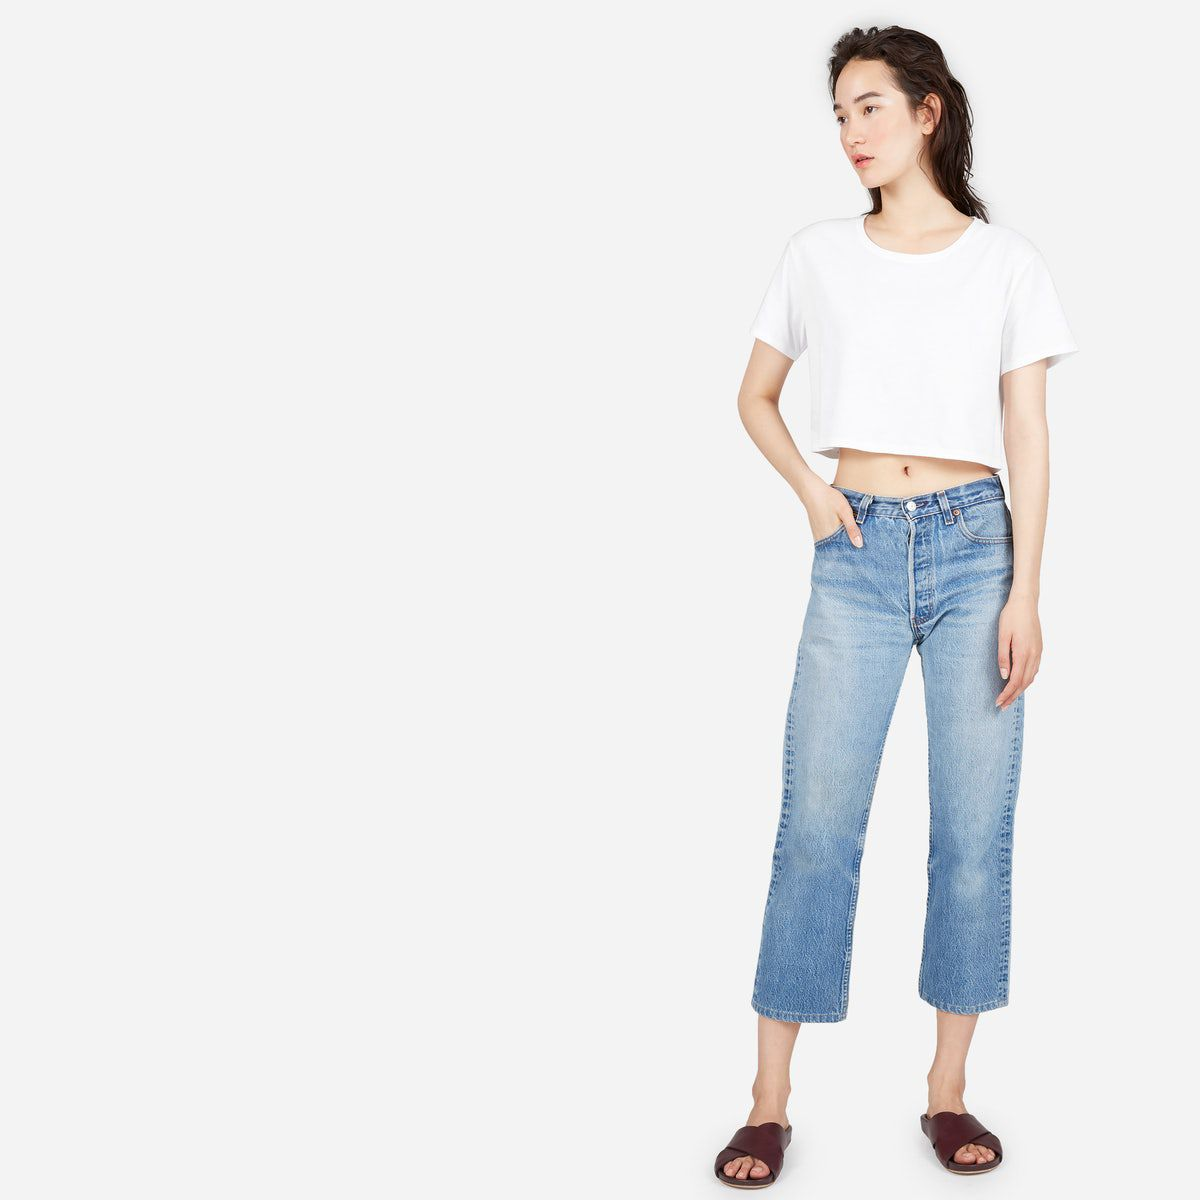 A model in a white cropped T-shirt and jeans